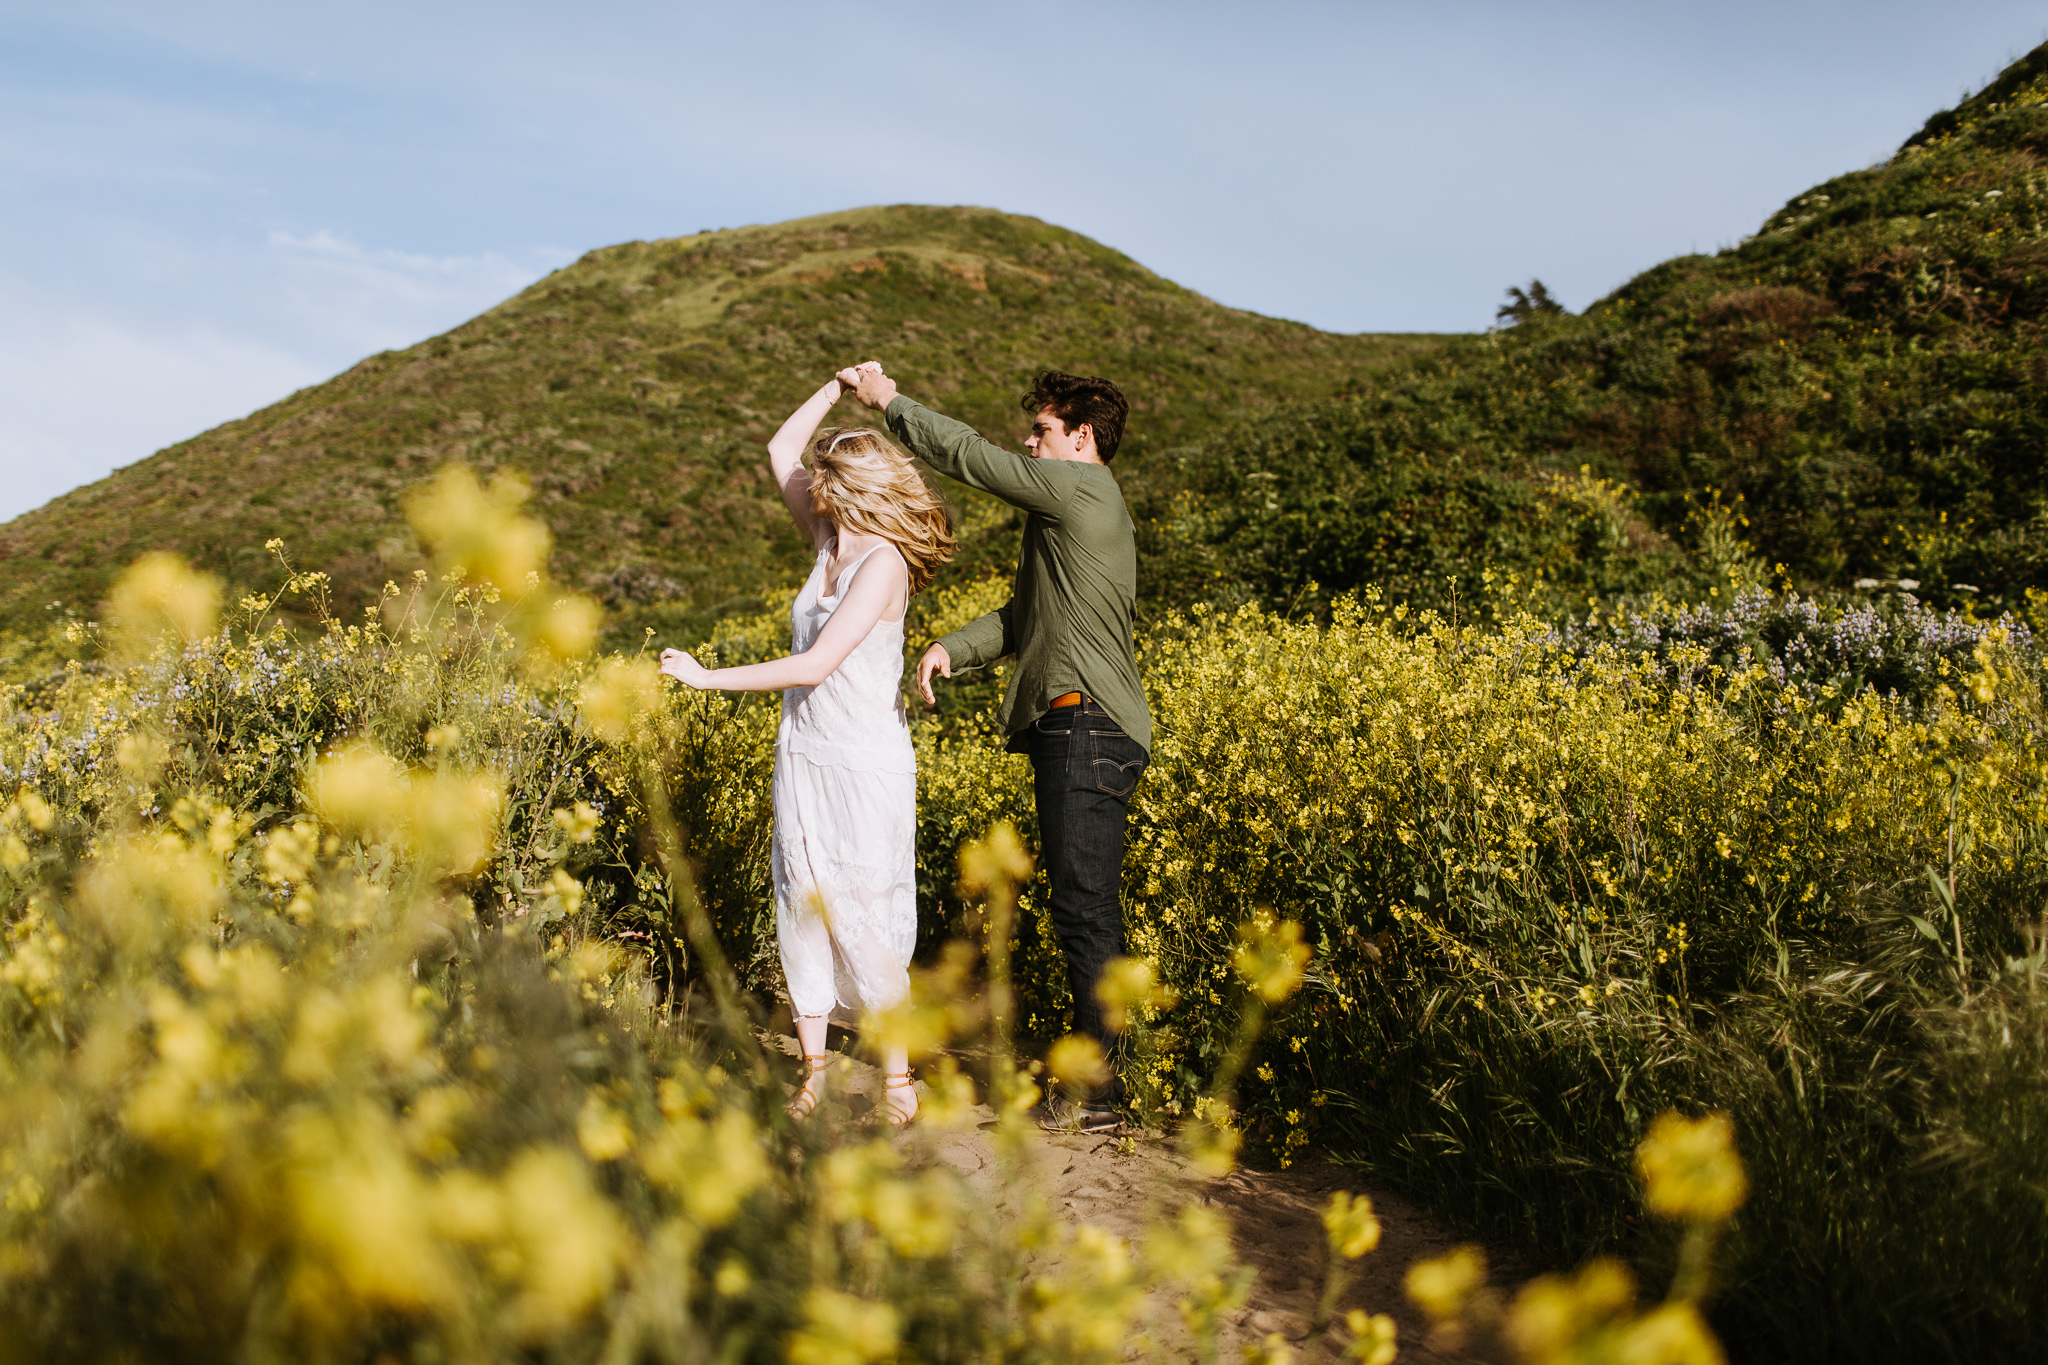 San-Francisco-Wedding-Photographer-Marin-Engagements-15.jpg